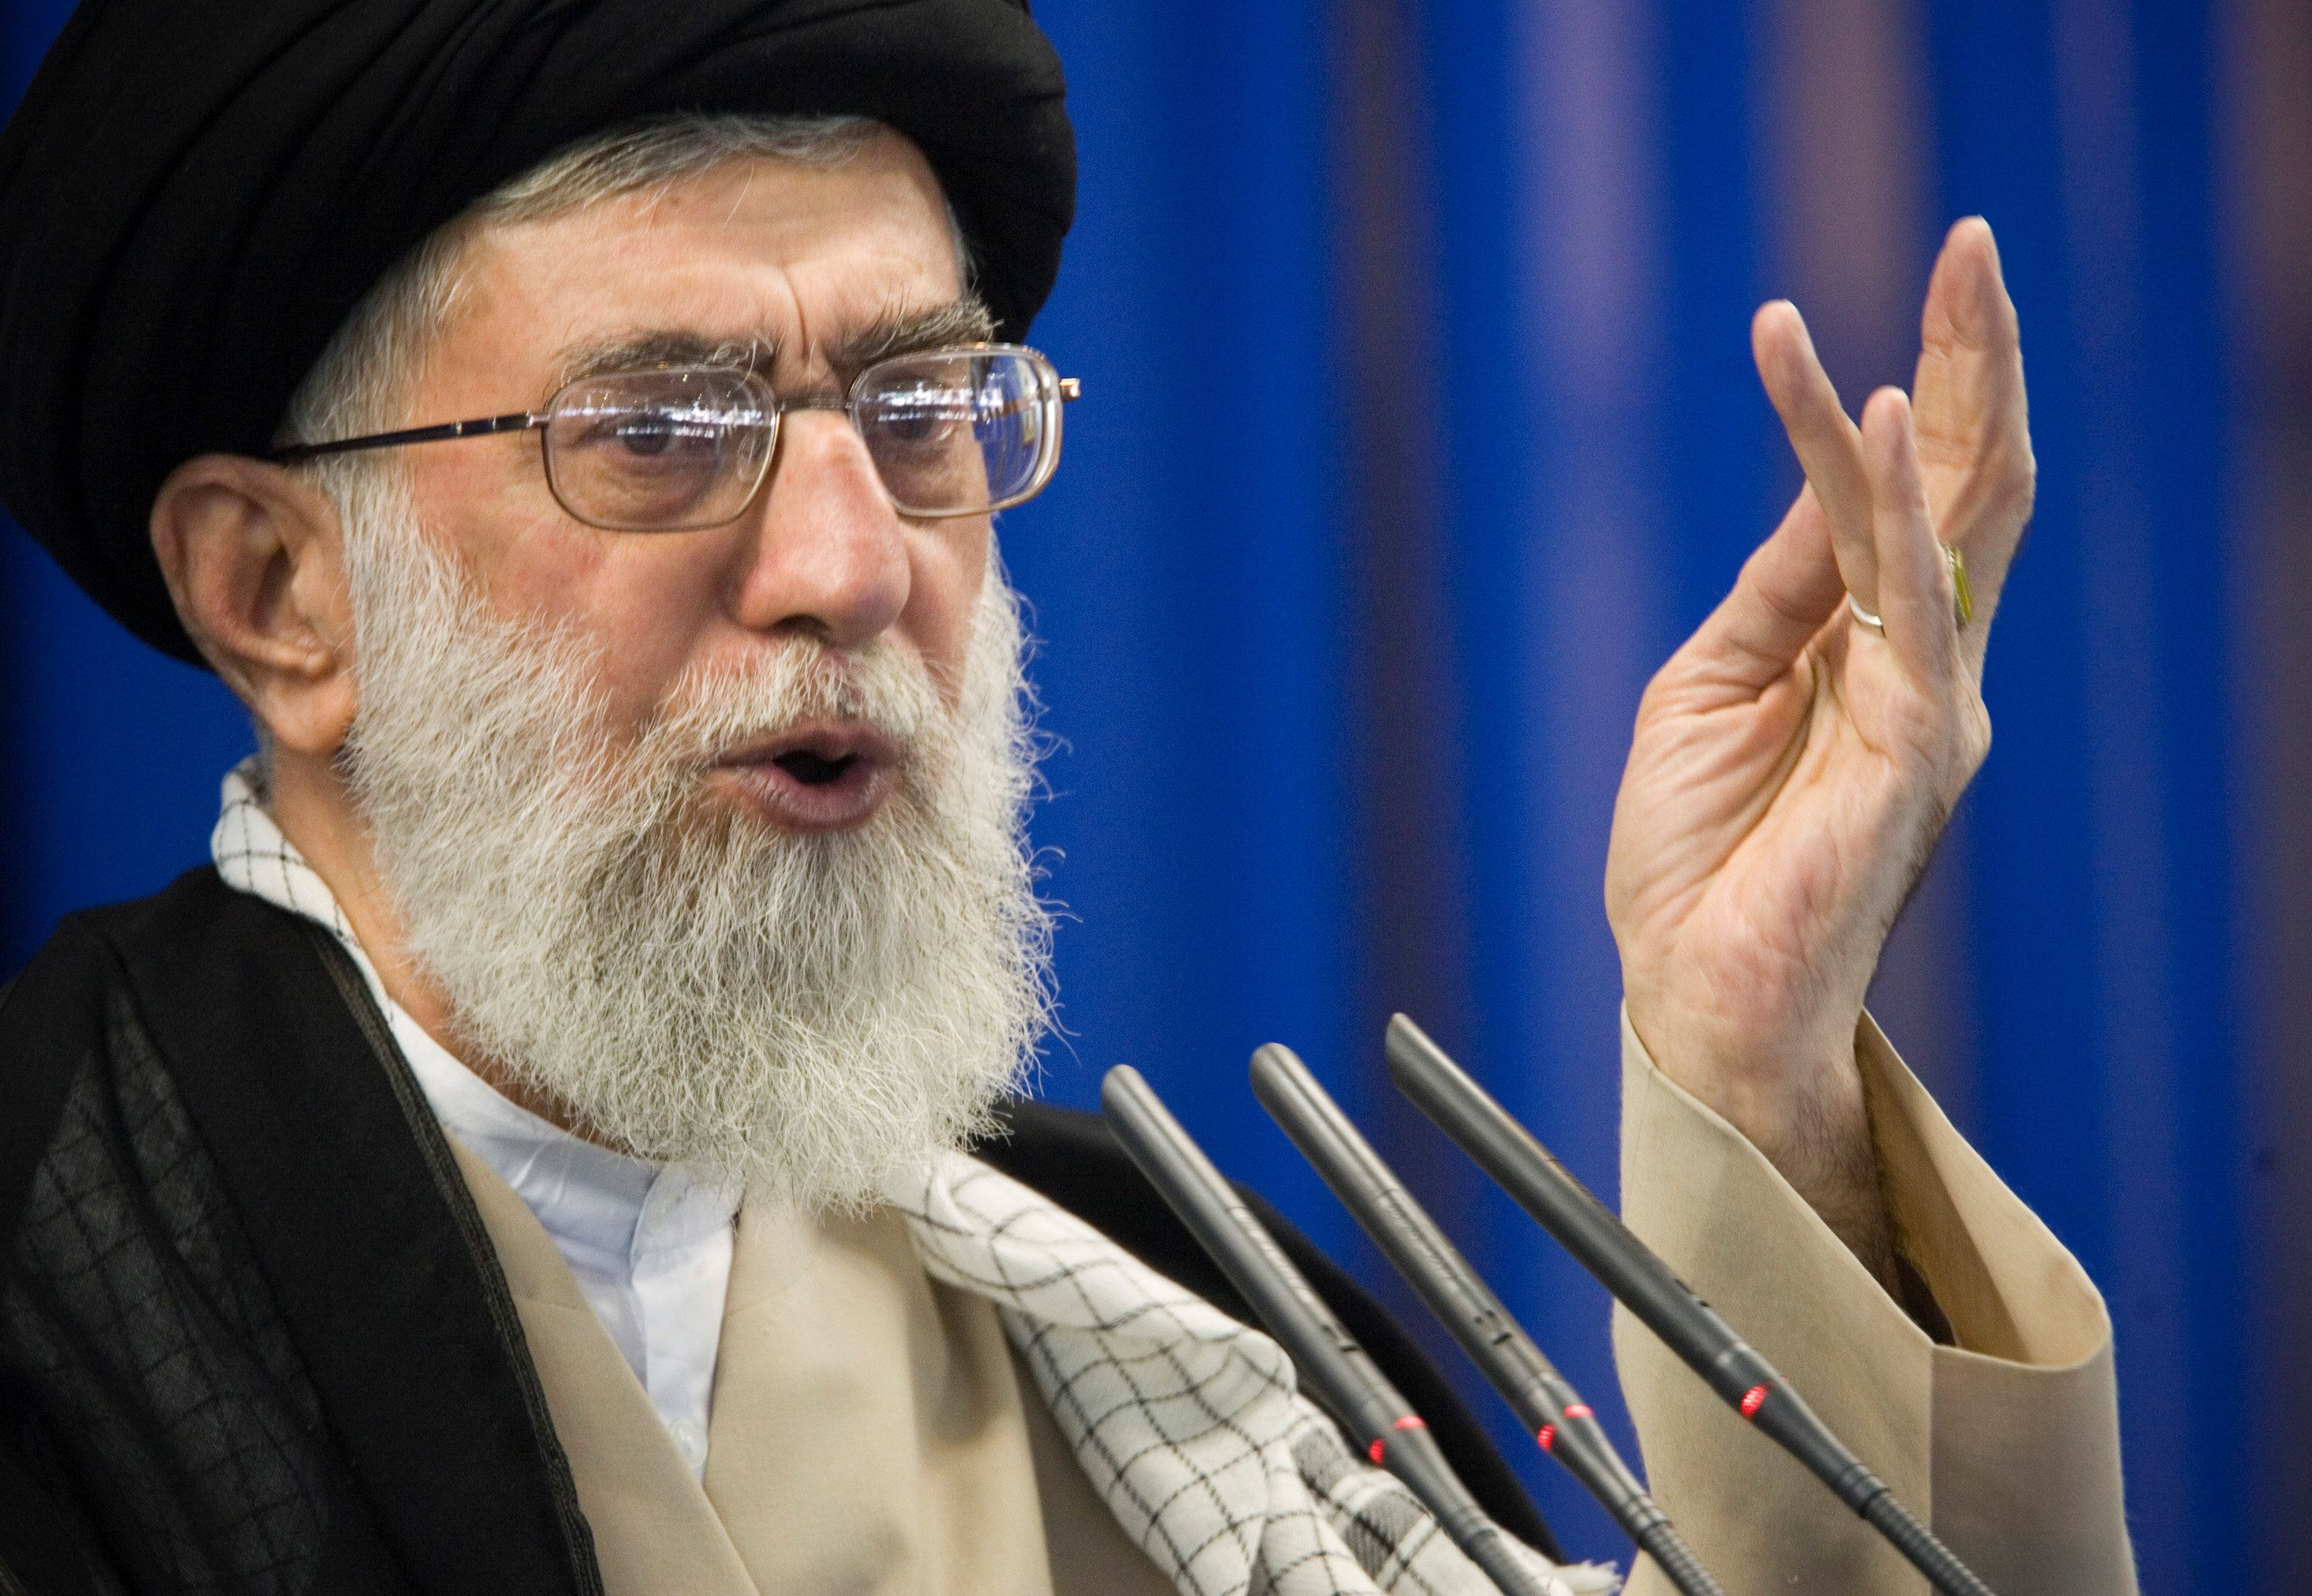 Iran's Supreme Leader Ayatollah Ali Khamenei said Tehran will not succumb to Washington's pressure over a multinat